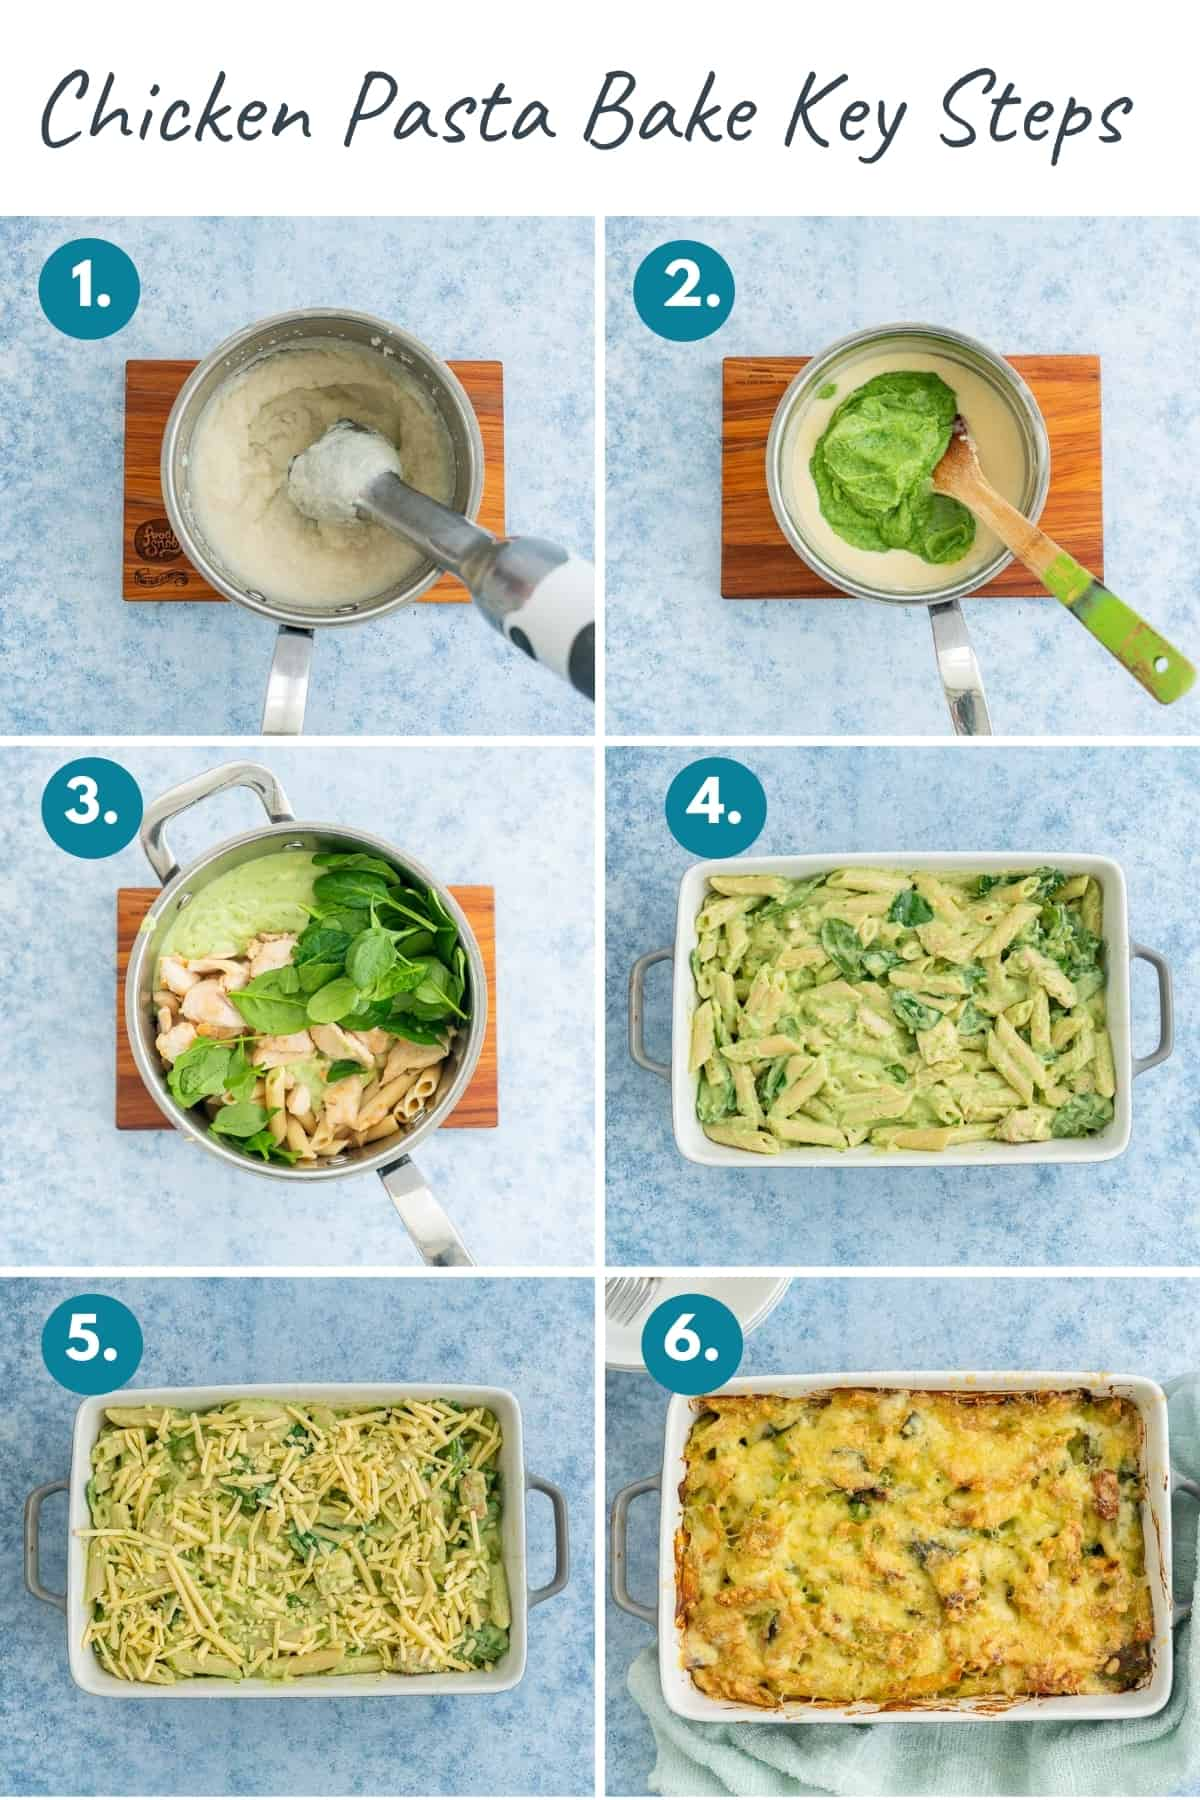 6 photo collage showing the key steps to preparing chicken pasta bake, with text overlay.